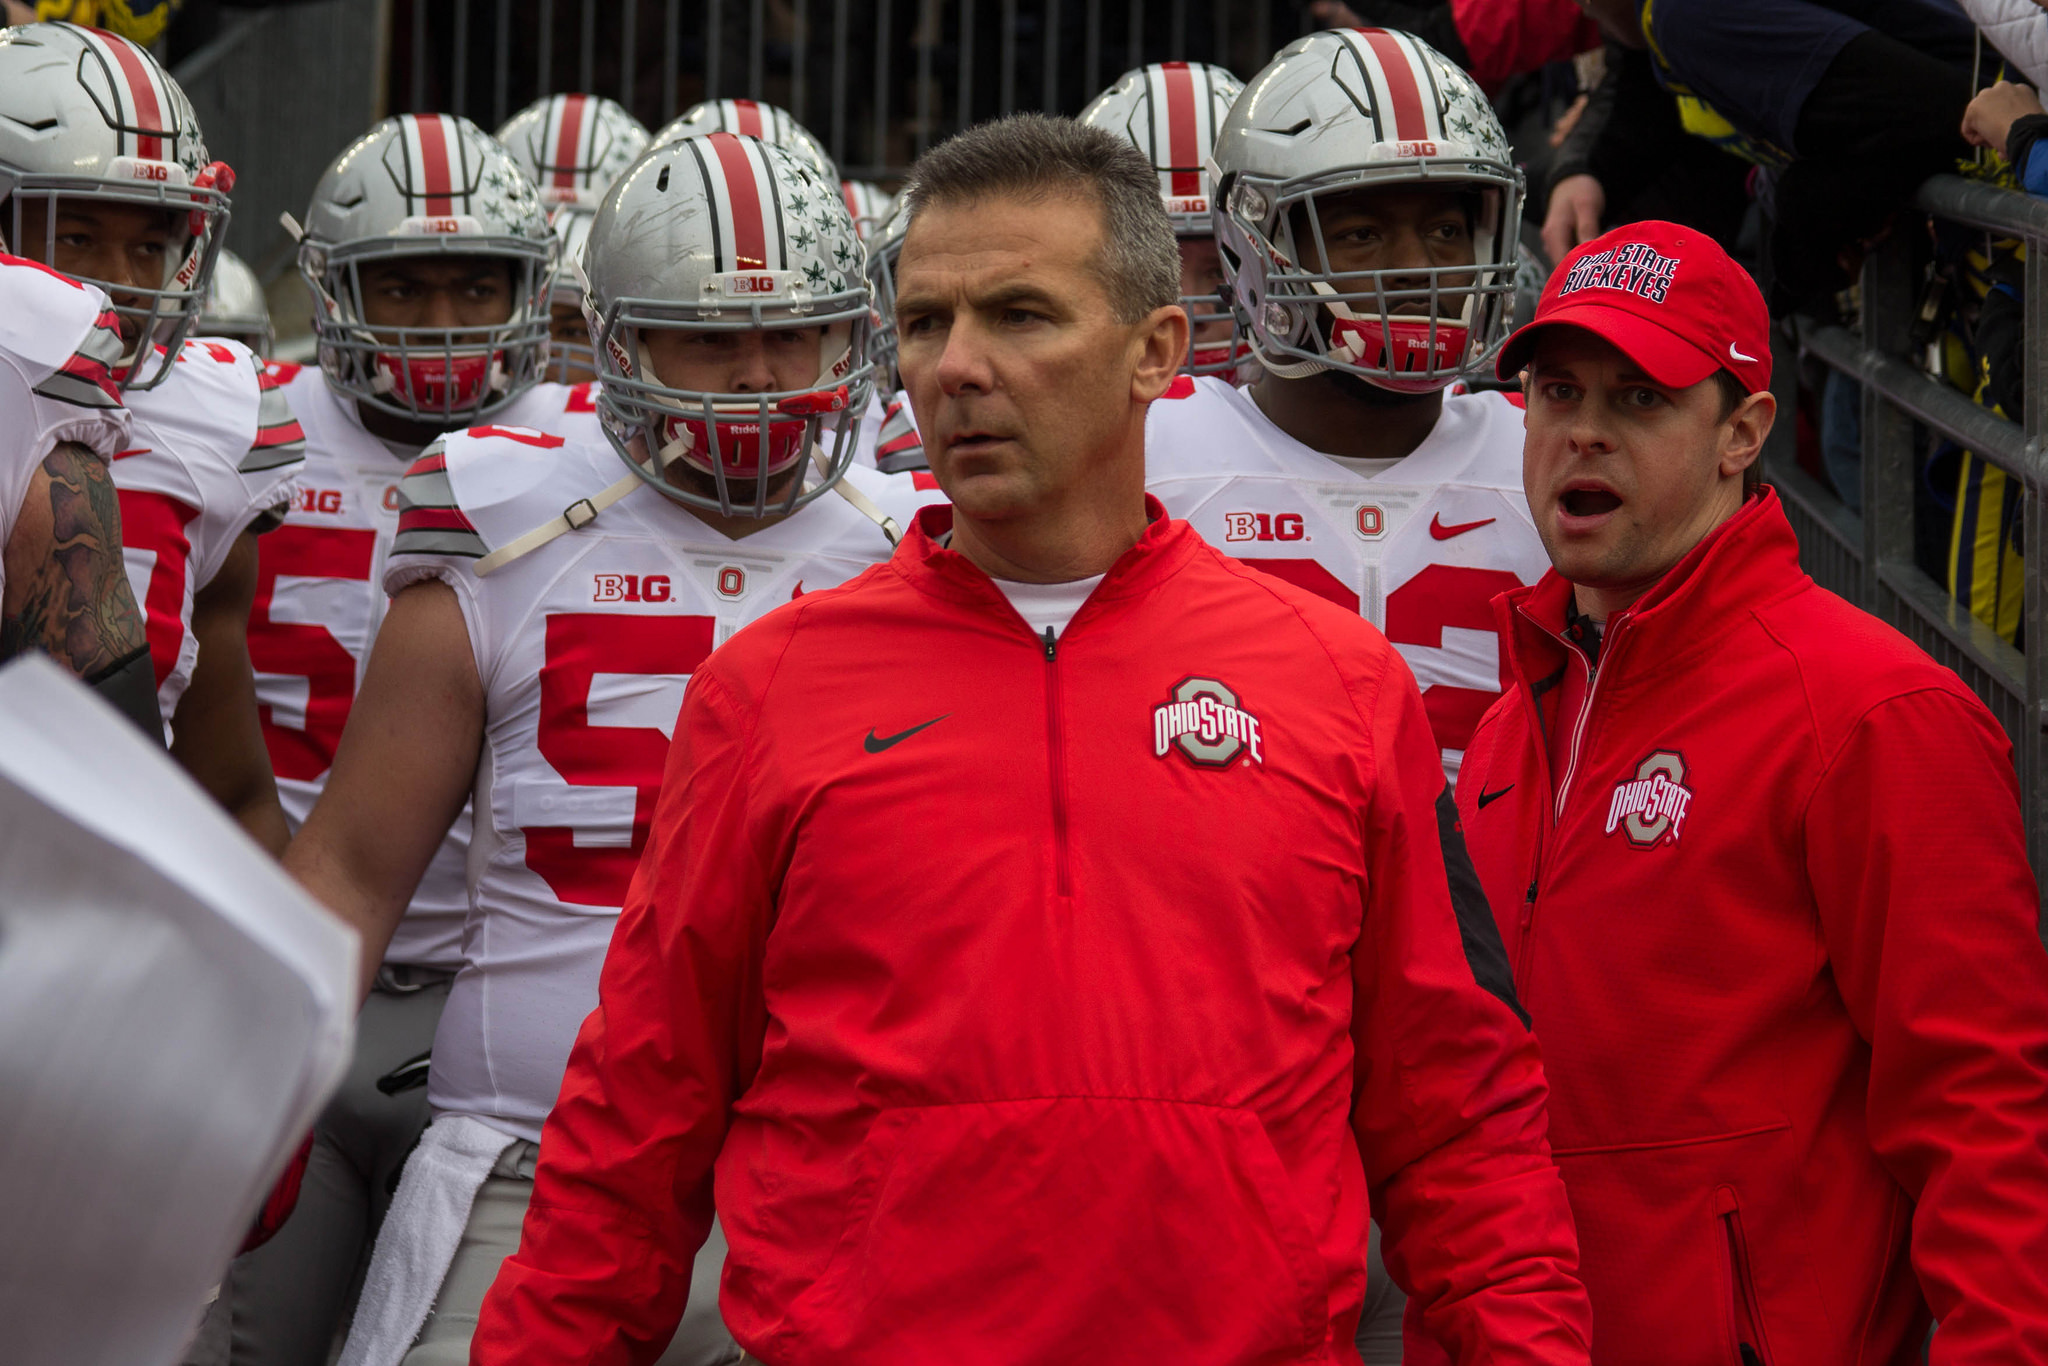 Days after his news conference, Urban Meyer finally apologizes to Courtney Smith